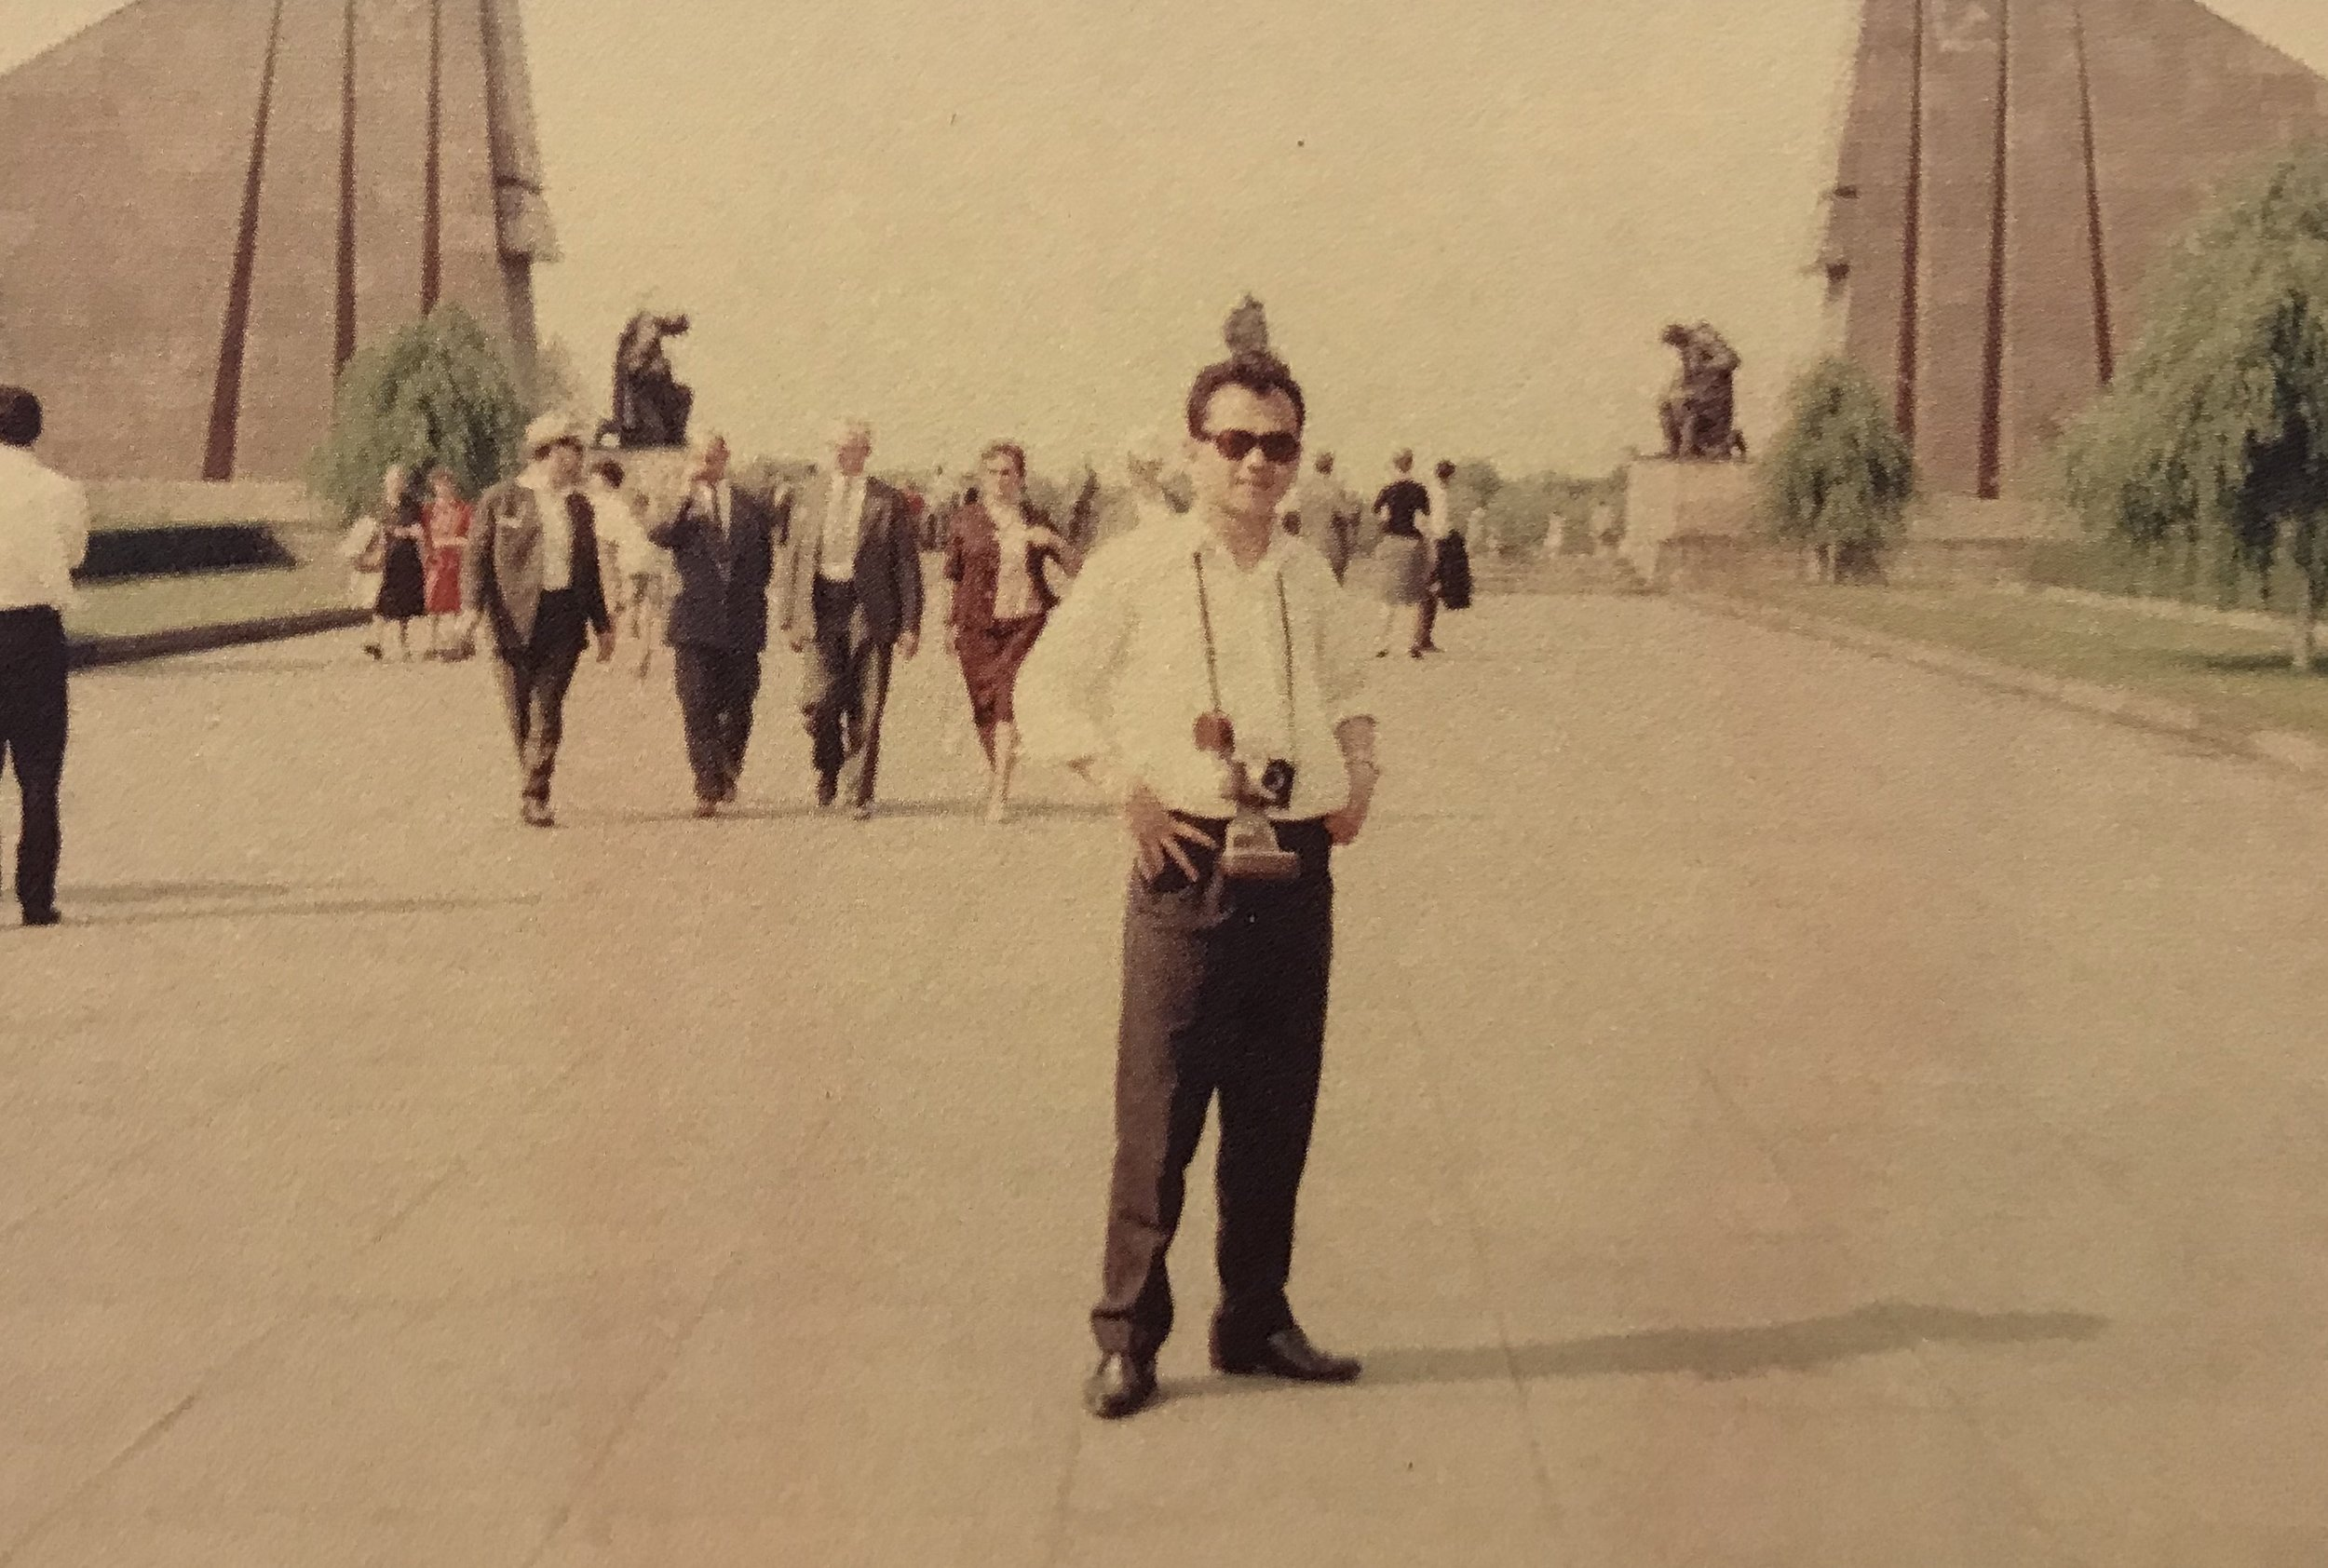 Dad with his camera in the 1960's